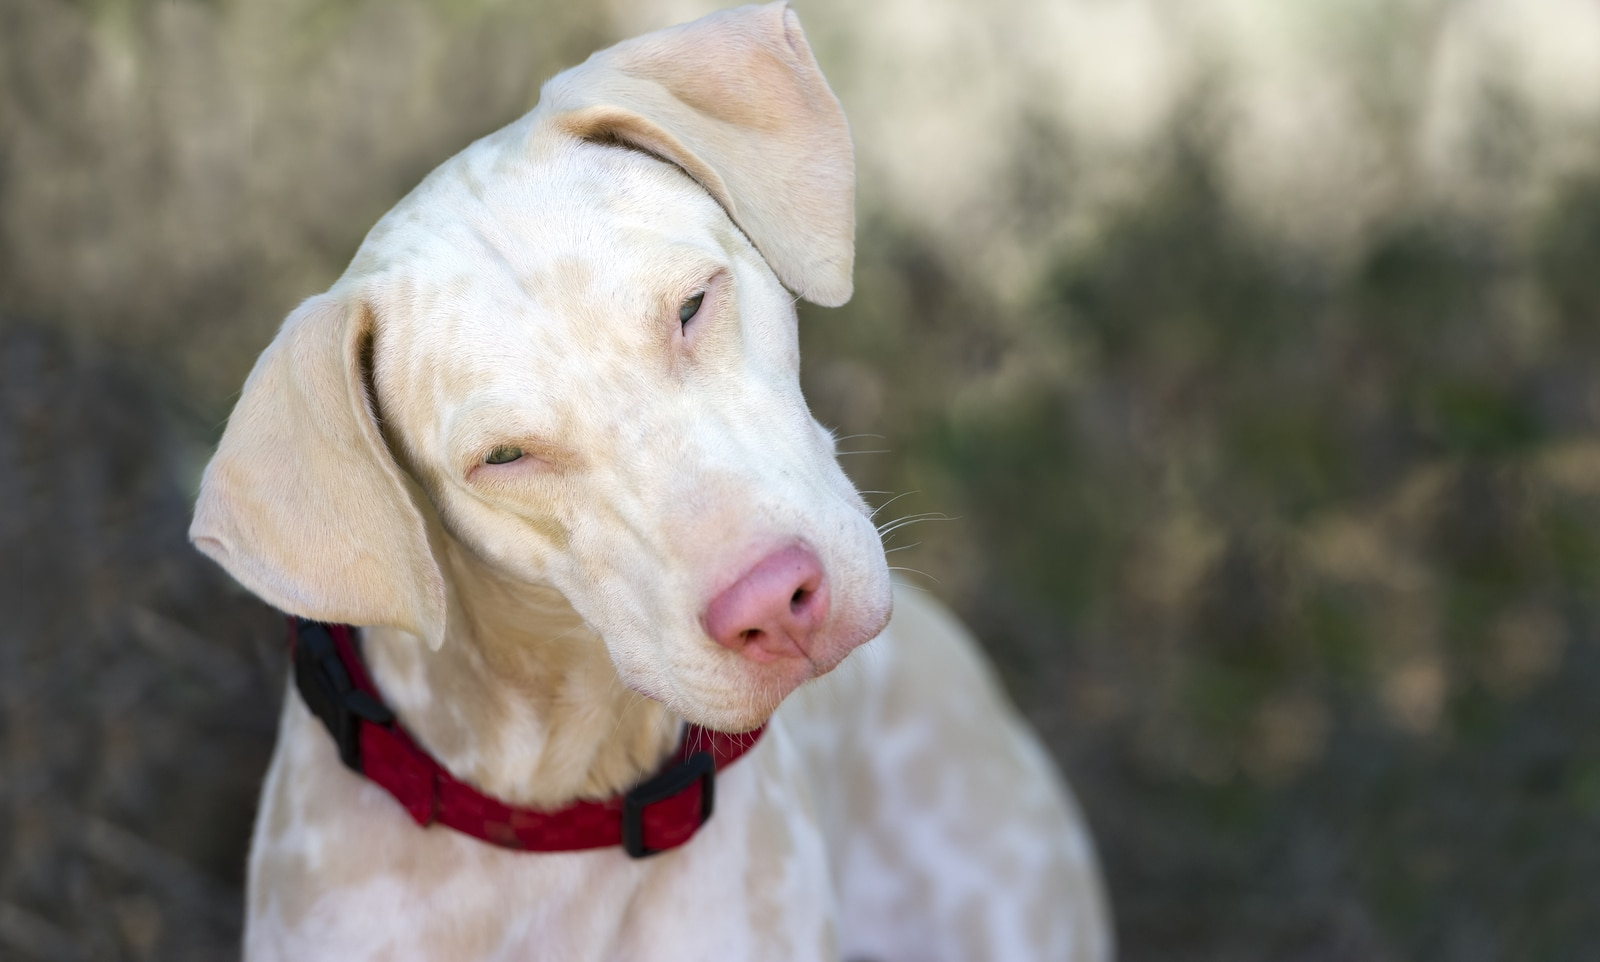 Albino dog has a pink nose and blue eyes and is looking curious straight into the camera.